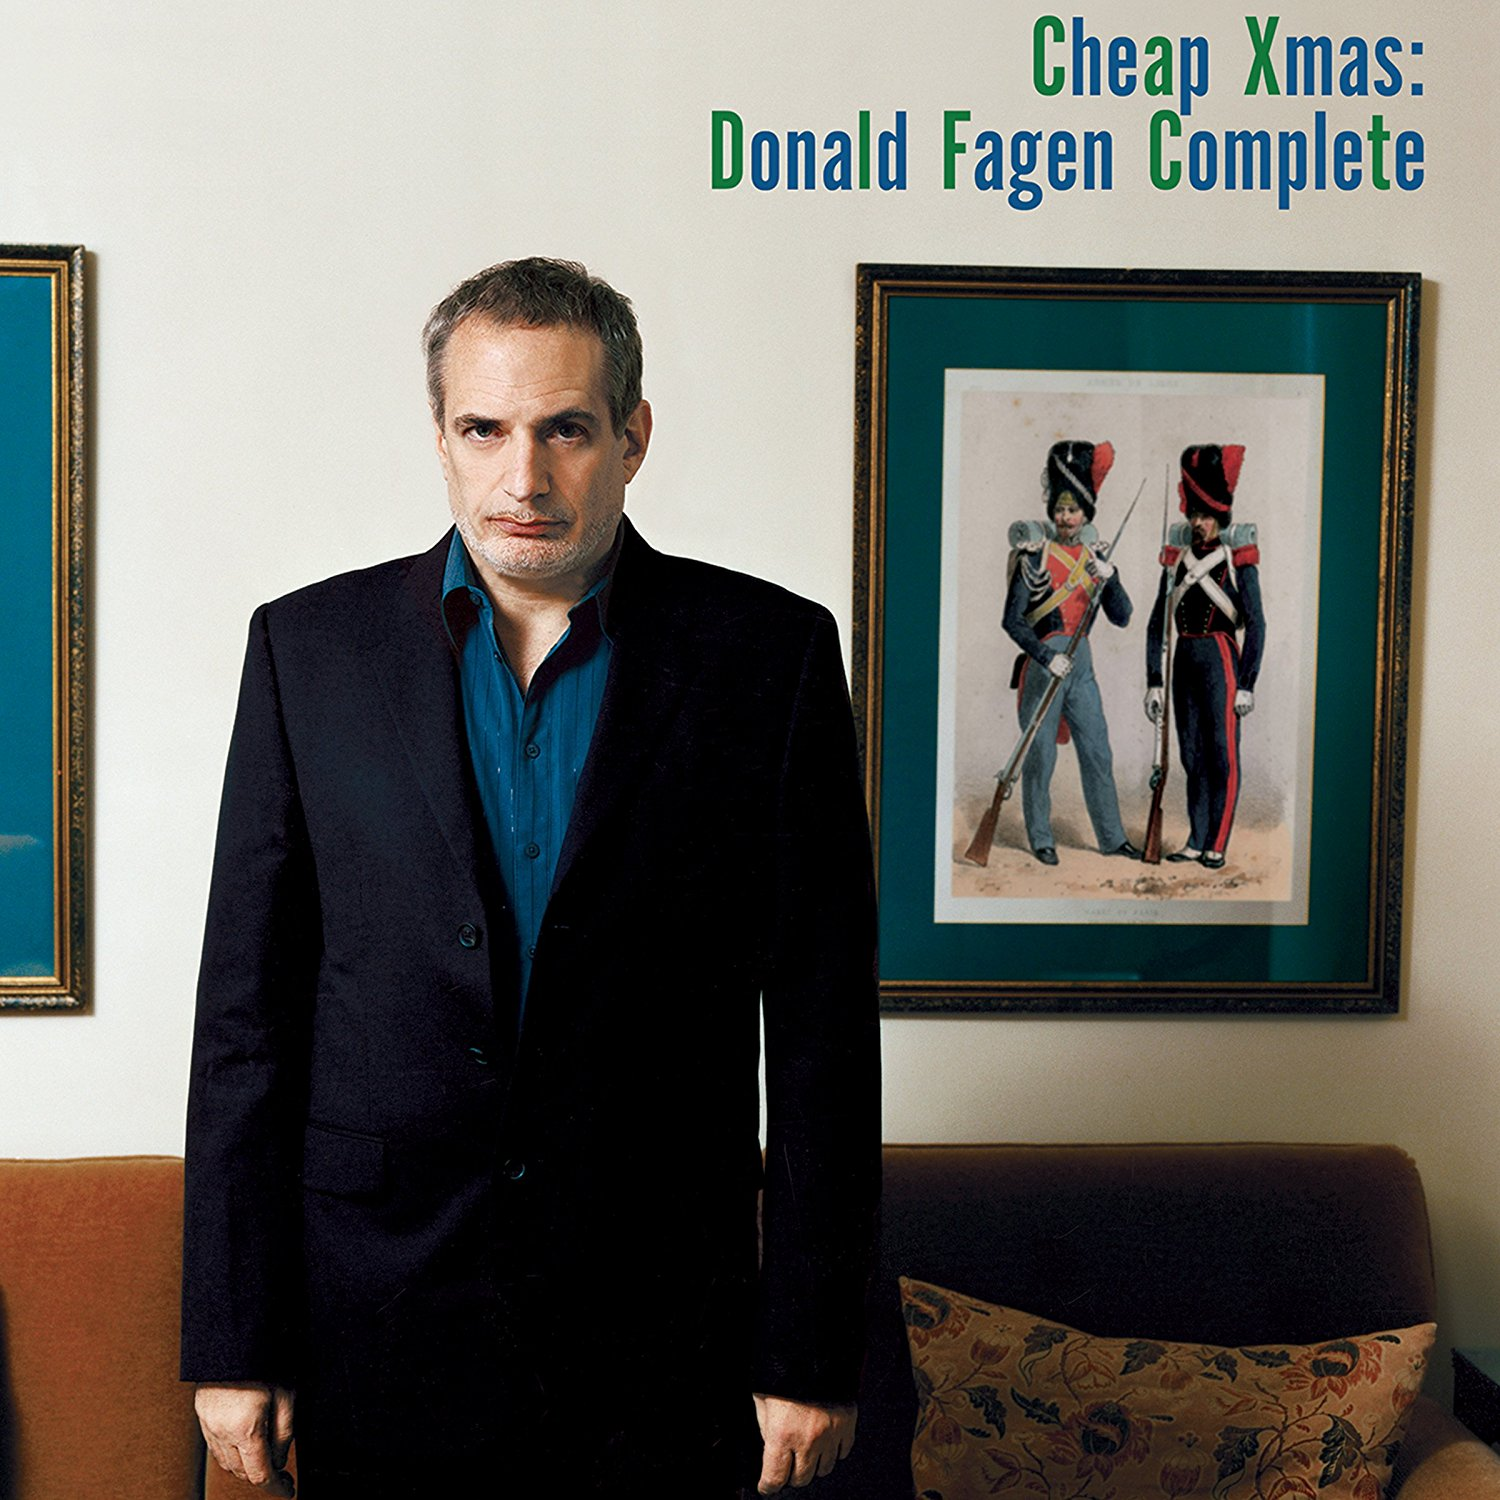 Donald Fagen - Cheap Xmas: Donald Fagen Complete [LP Box Set]